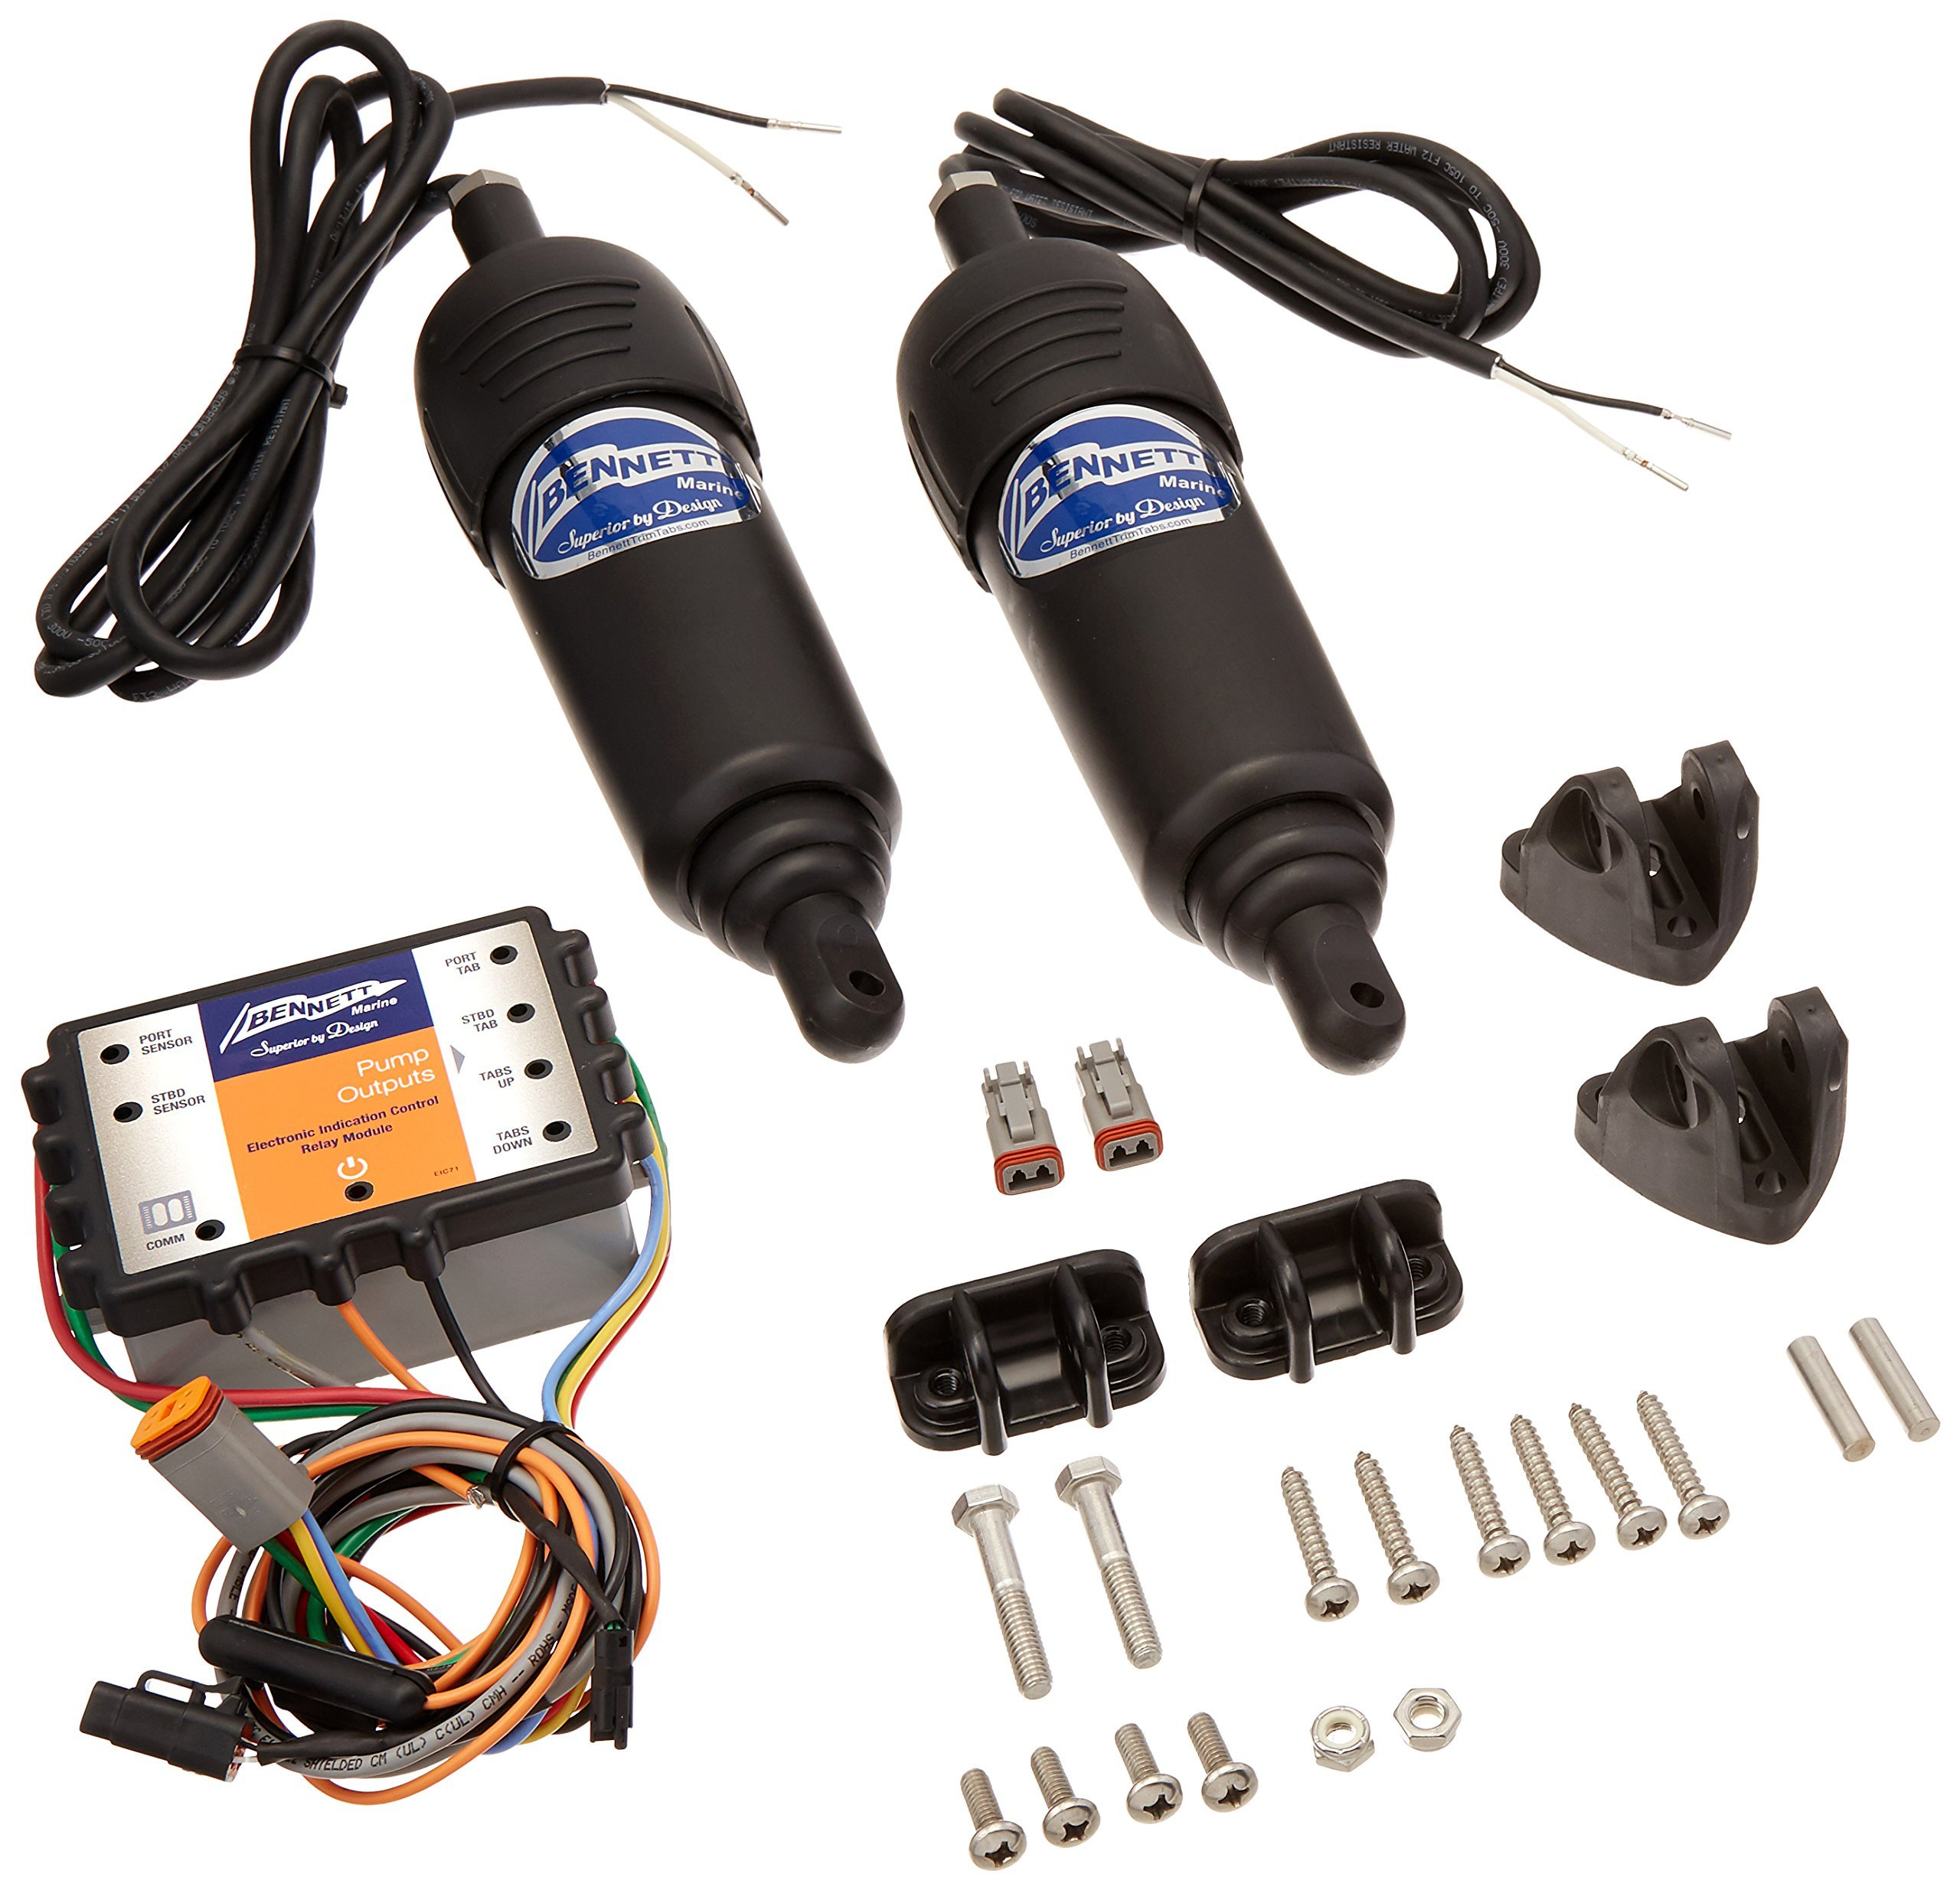 Bennett Marine 3004.0333 Hydraulic to BOLT Electric Conversion Kit